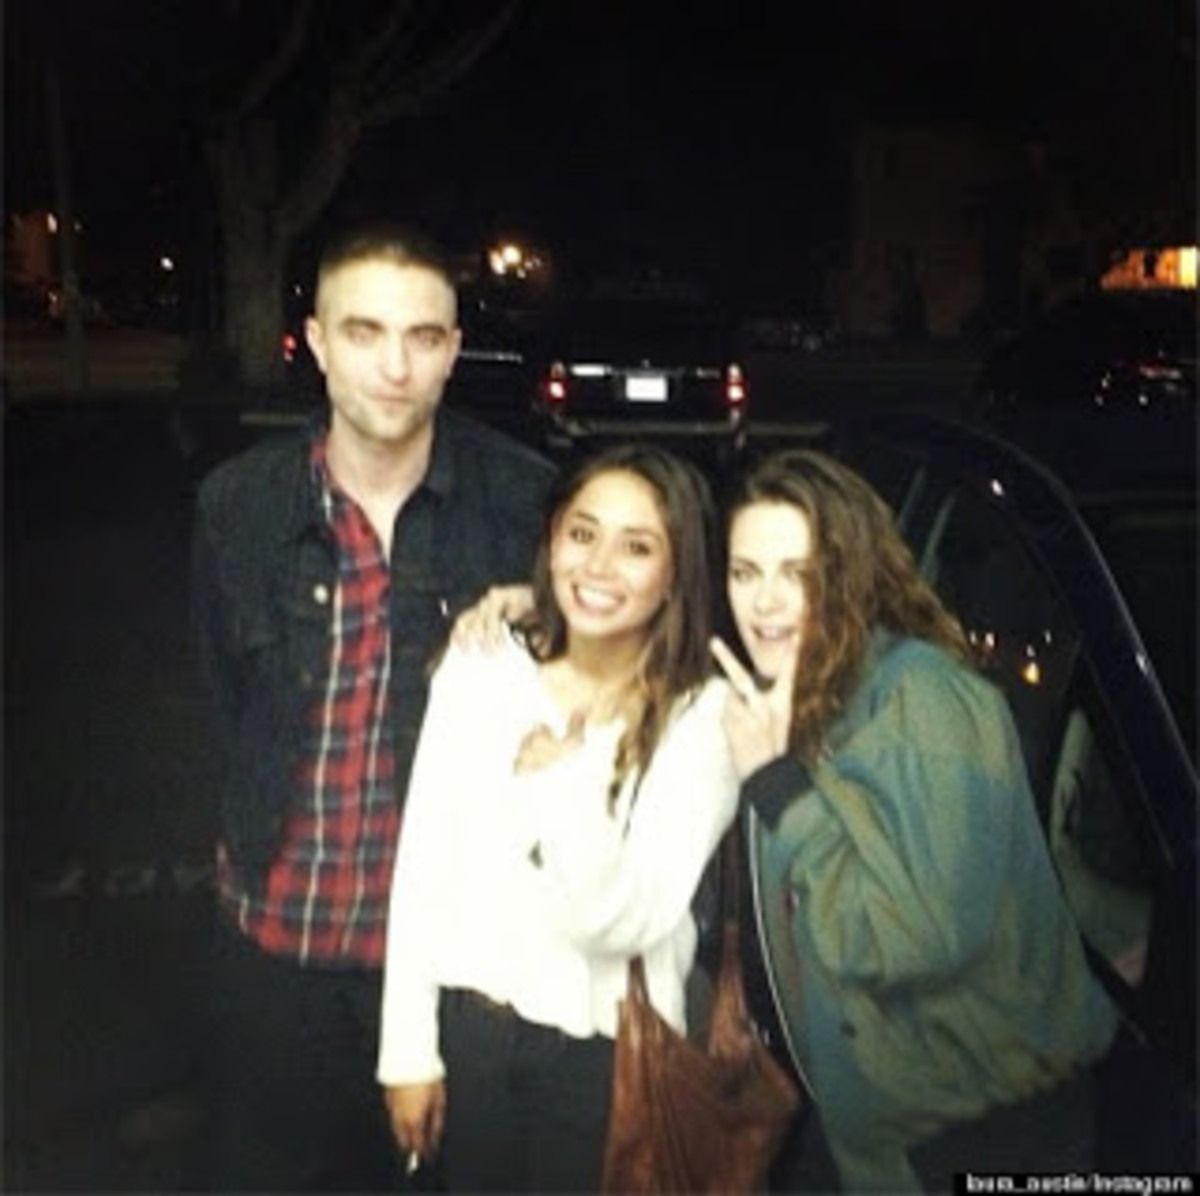 March 21, 2013 - This is Robert & Kristen, obviously still together after this 2nd round of gossip lies. They NEVER 'separated.